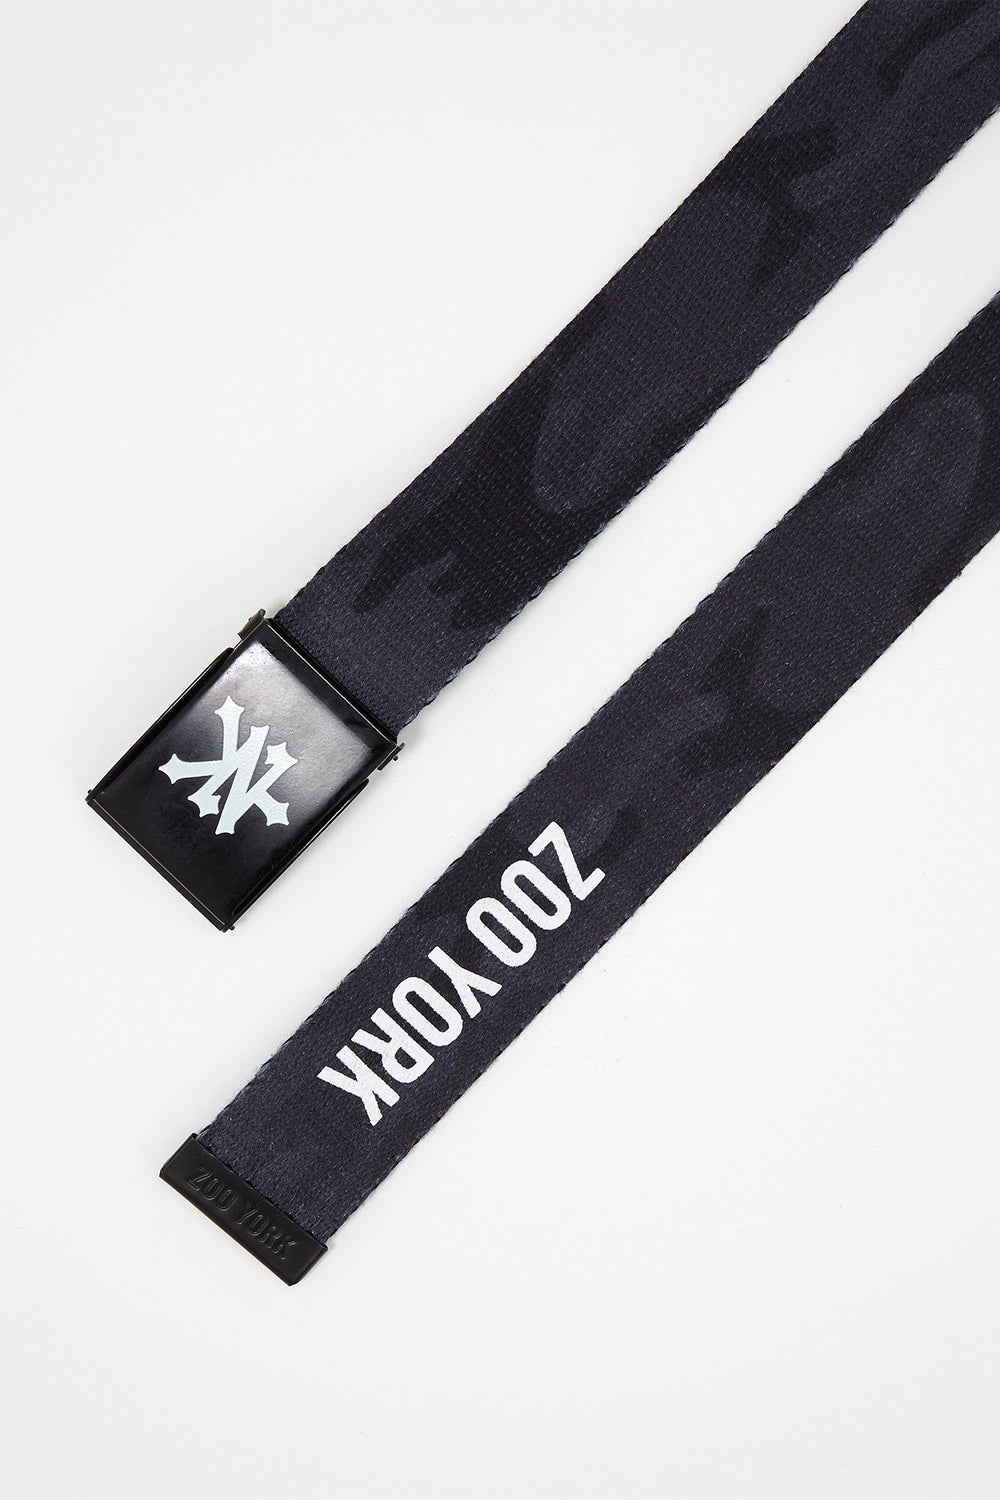 Zoo York Boys Dark Camo Cotton Belt Black